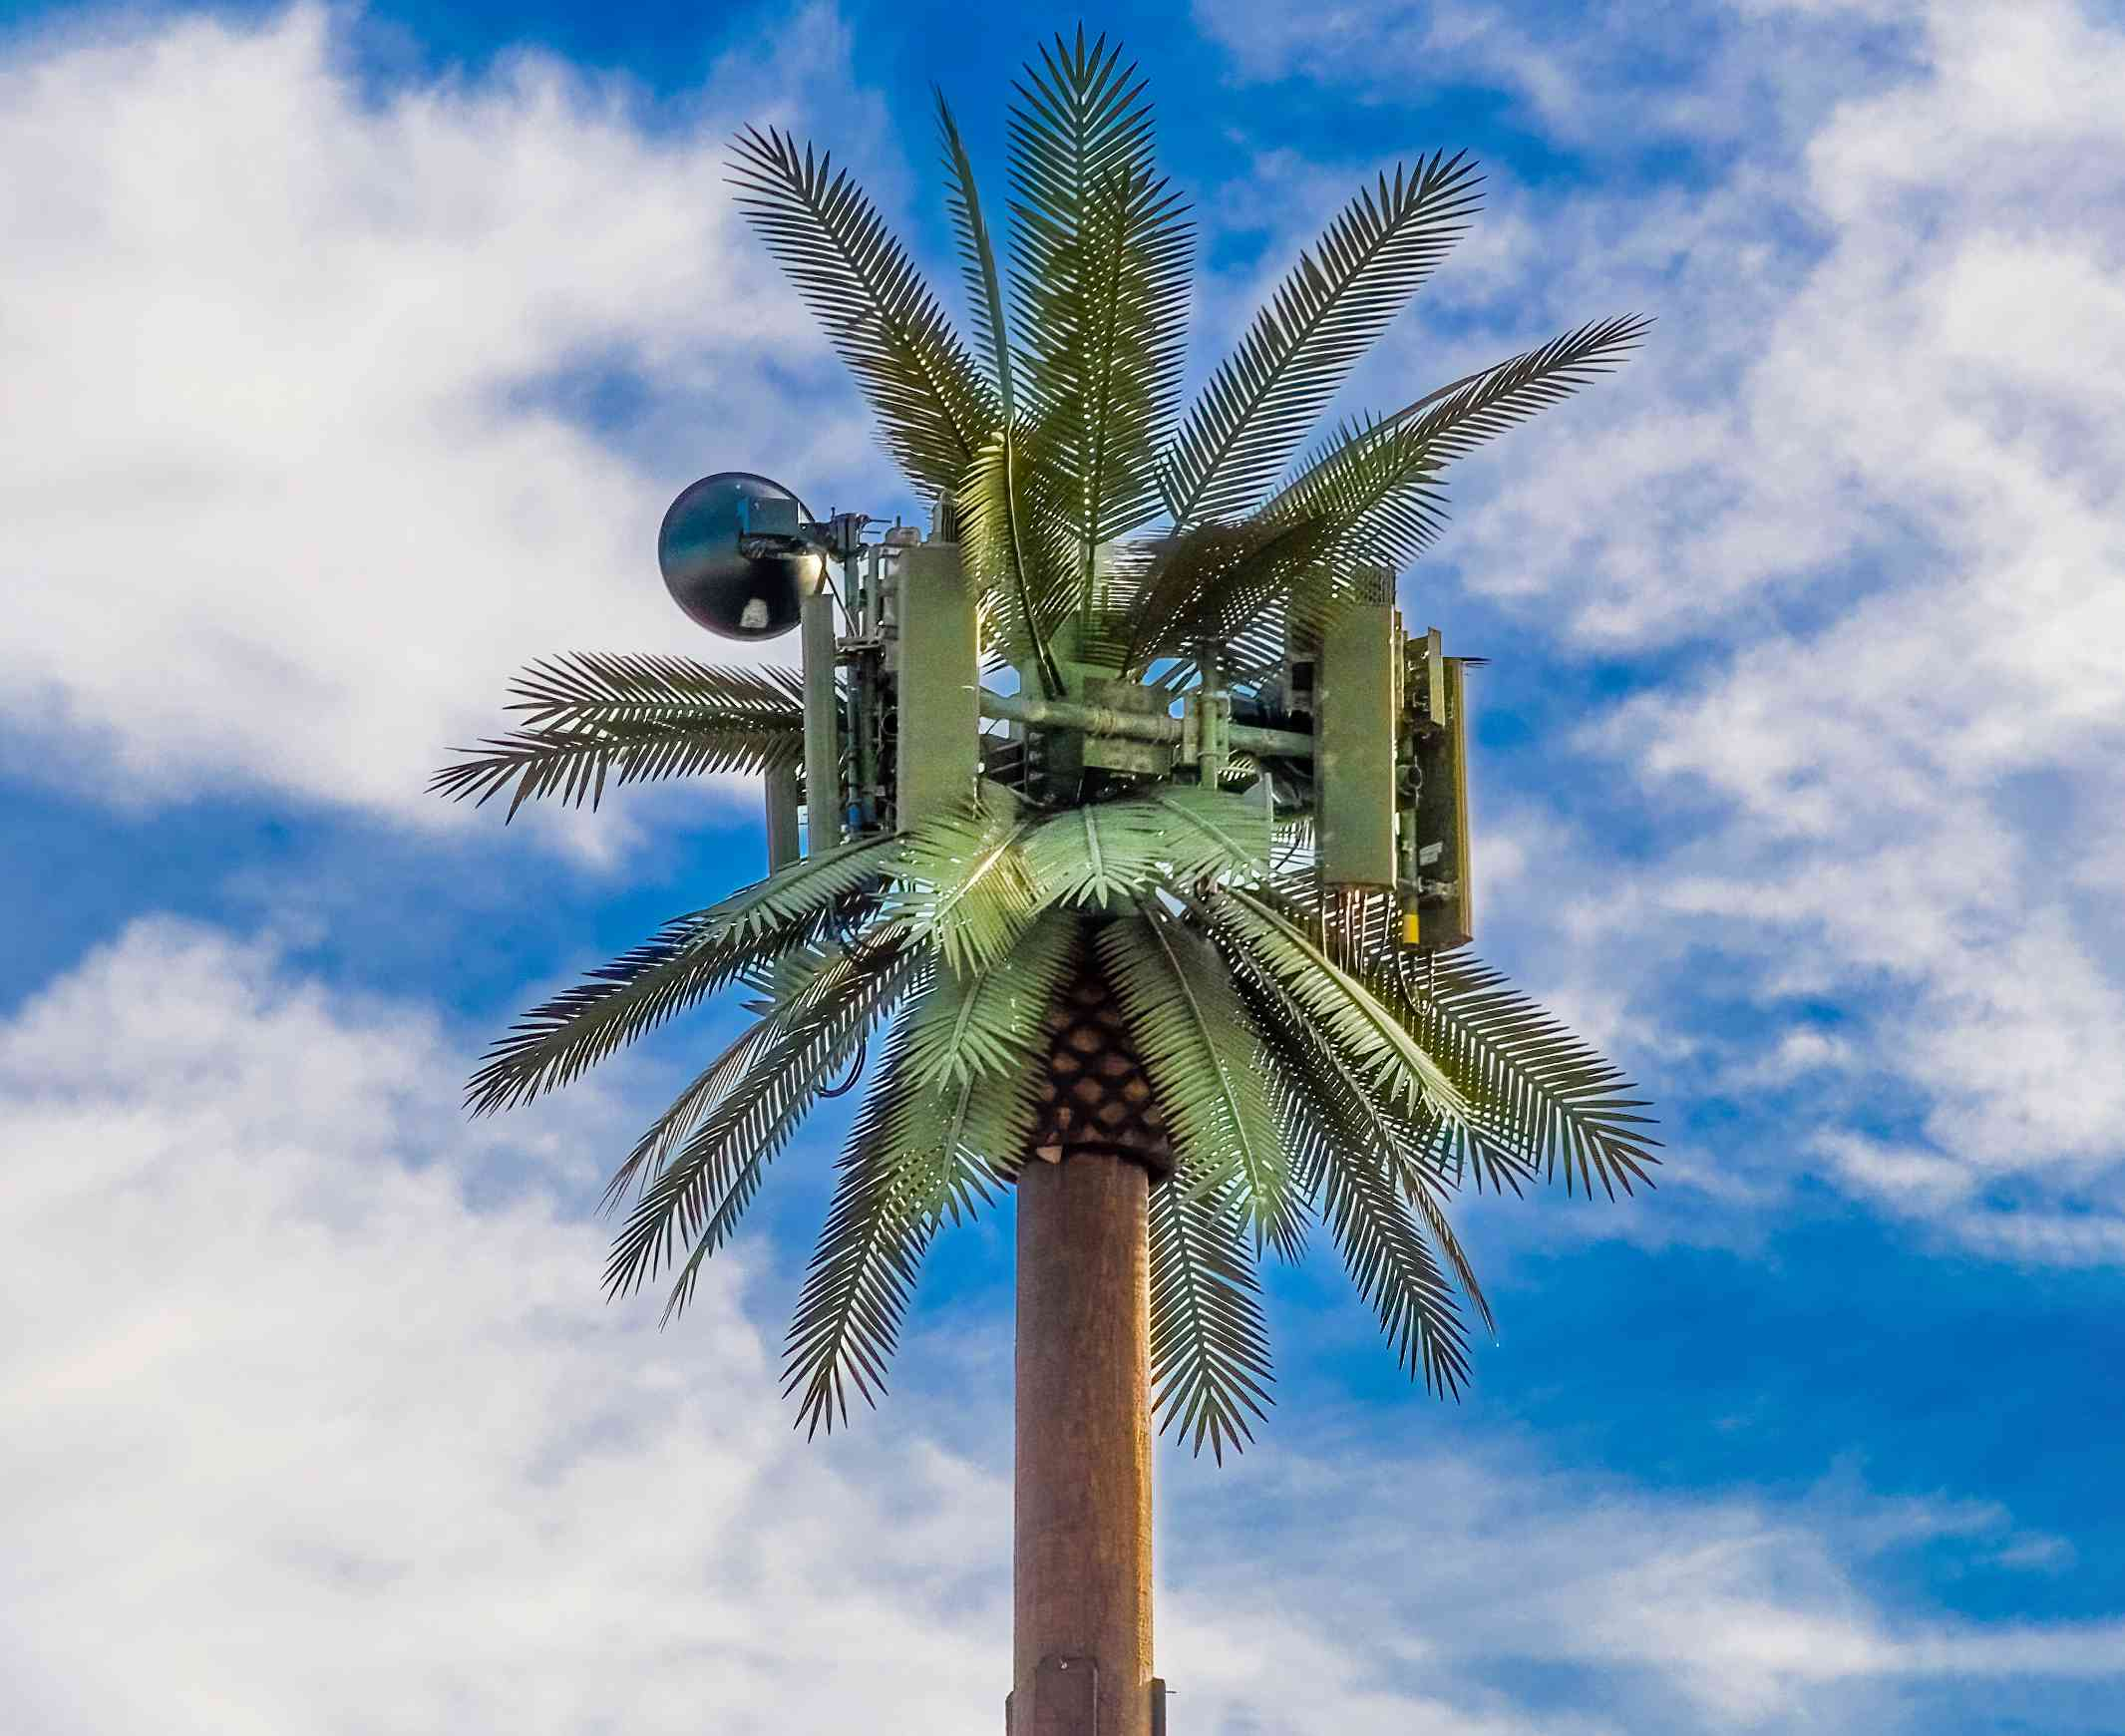 A camouflaged telecommunications tower that looks like a palm tree.